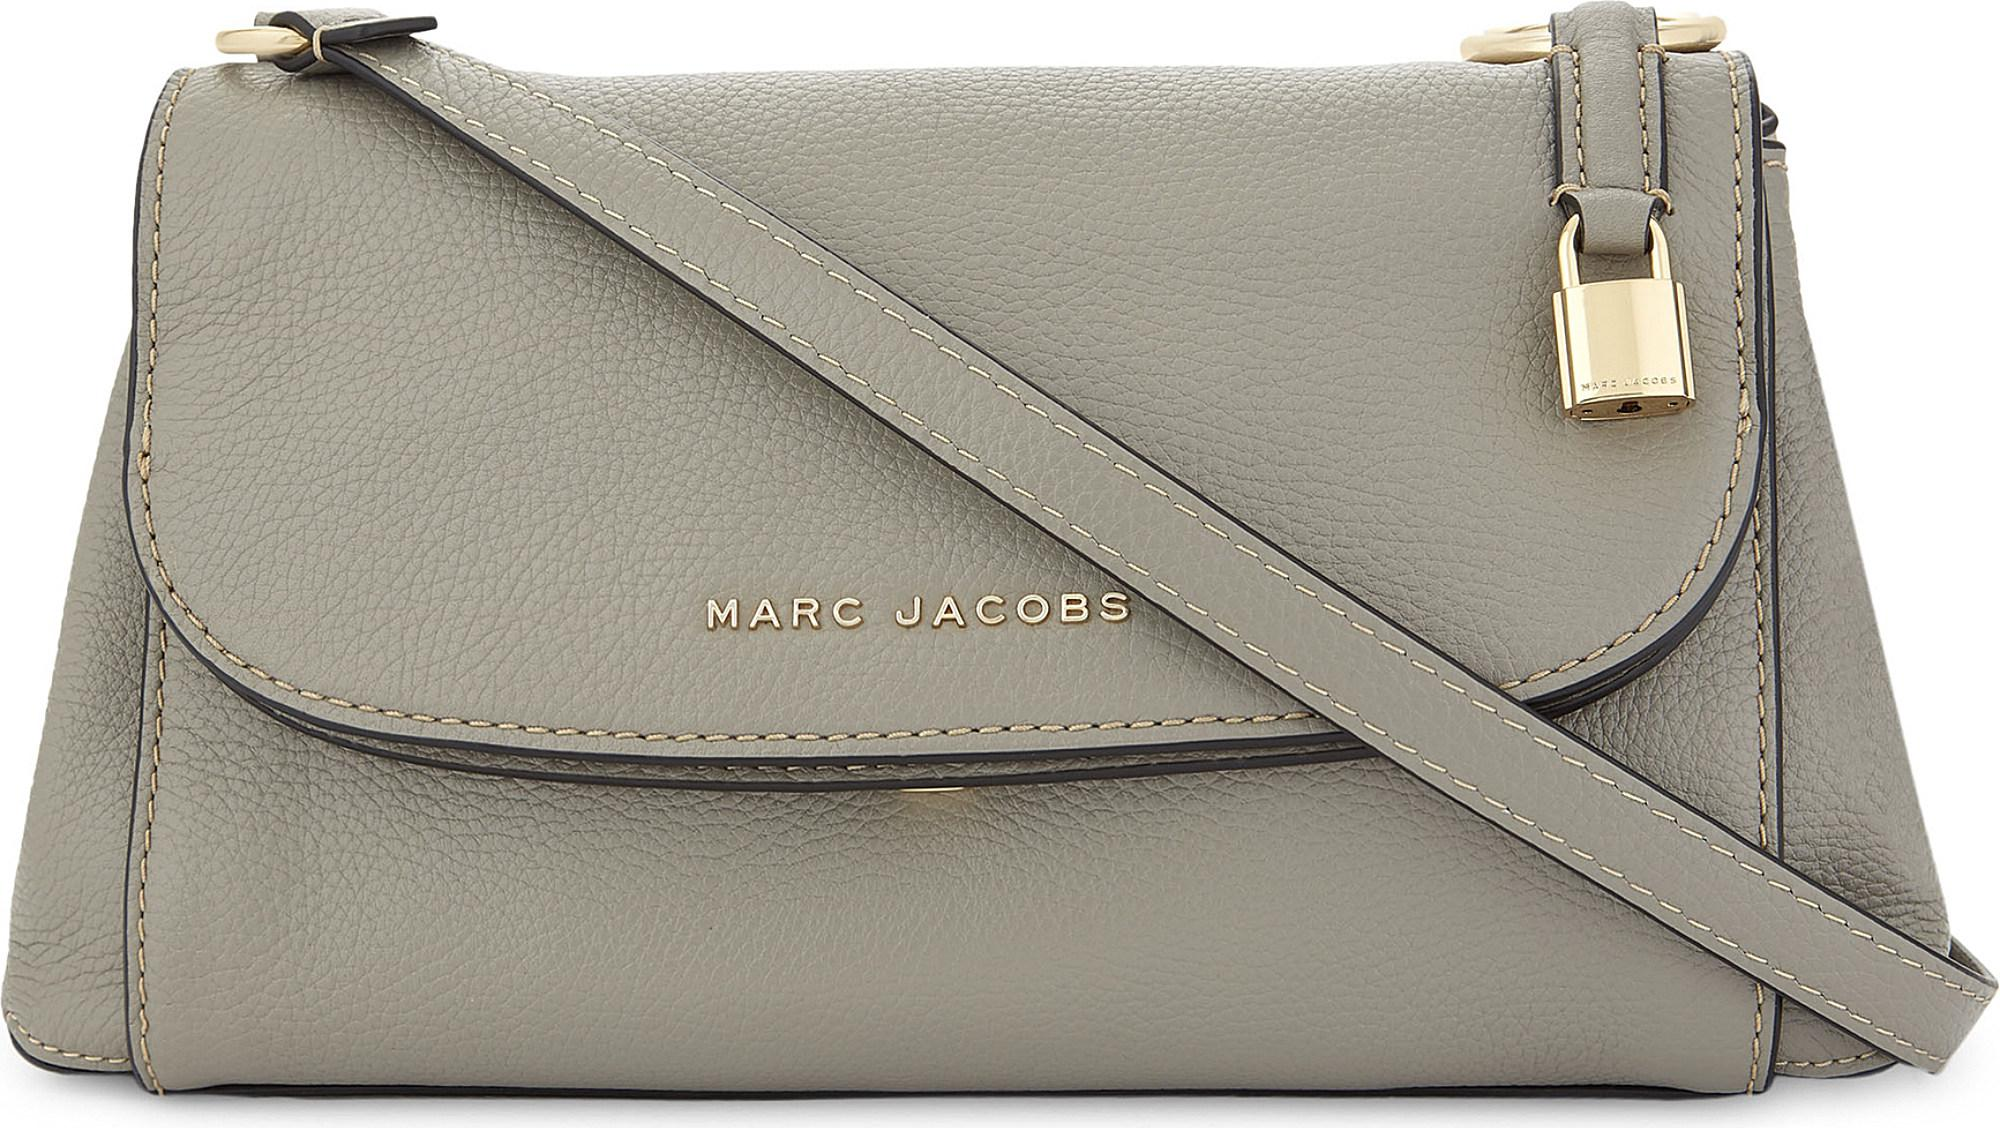 f0712b3f93 Marc Jacobs Boho Grind Leather Cross-body Bag in Gray - Lyst